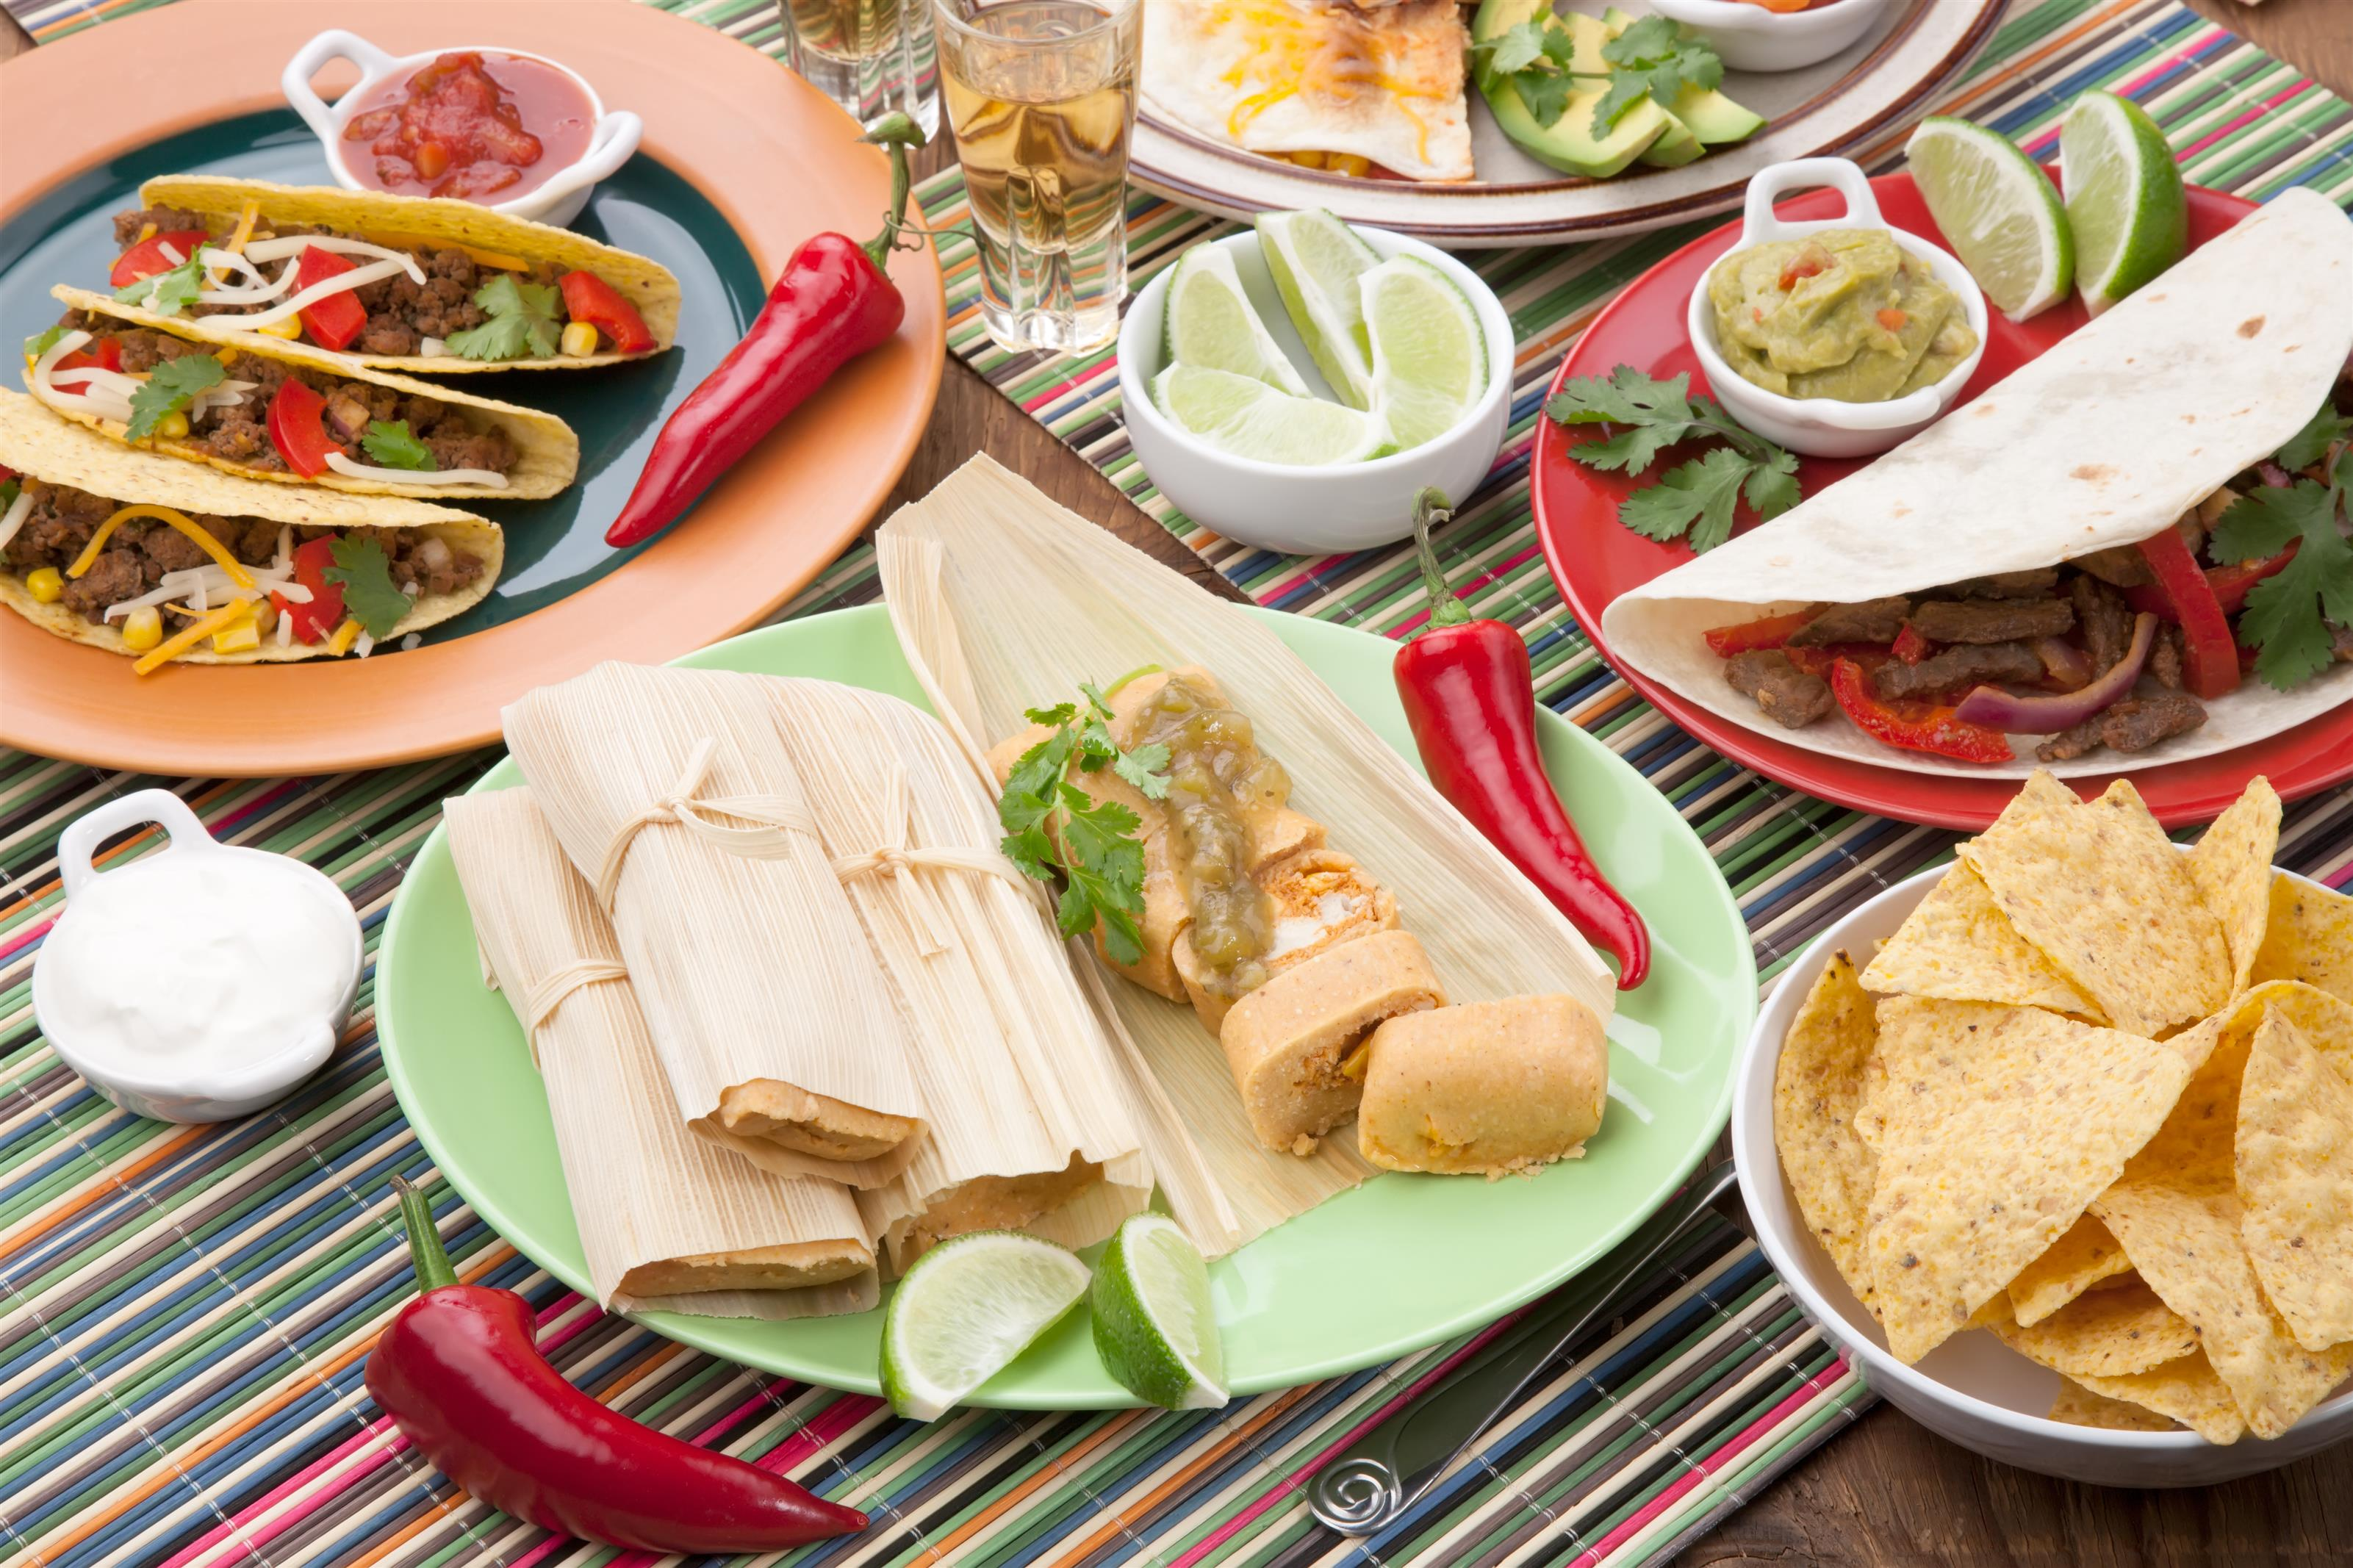 Authentic Mexican spread featuring temales, tacos, tortilla chips, surrounded by chili peppers and limes all on colorful dishes